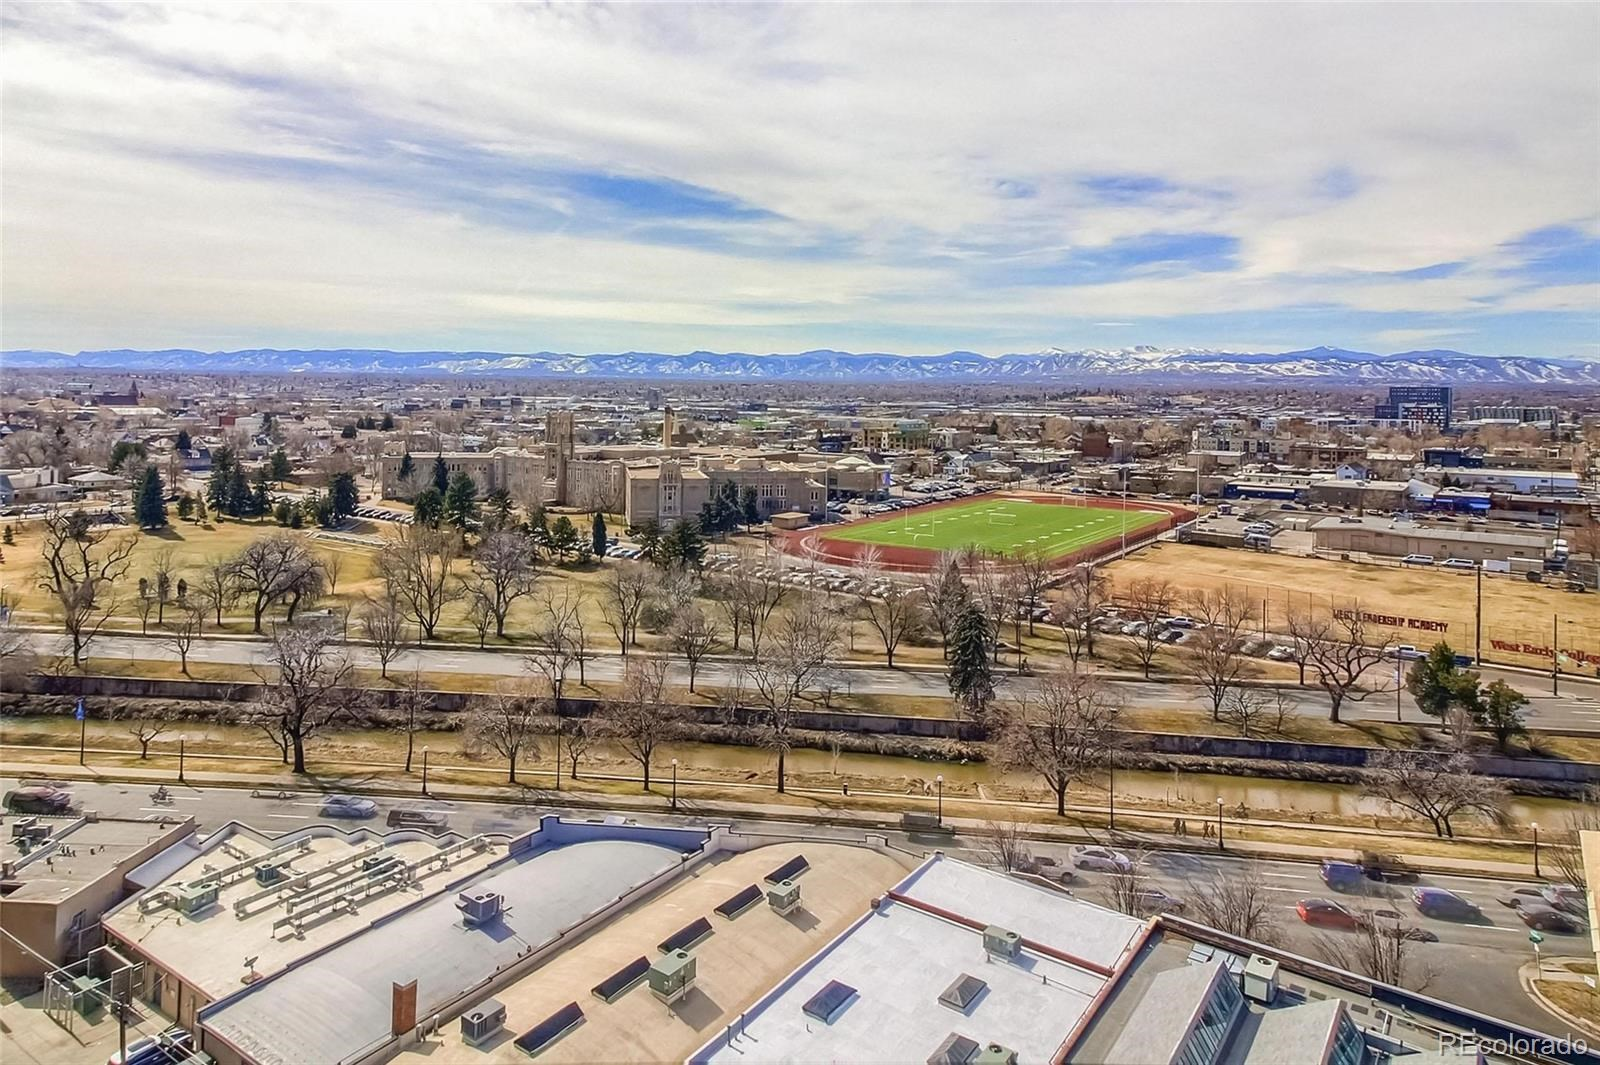 MLS# 2032865 - 300 W 11th Avenue #14C, Denver, CO 80204